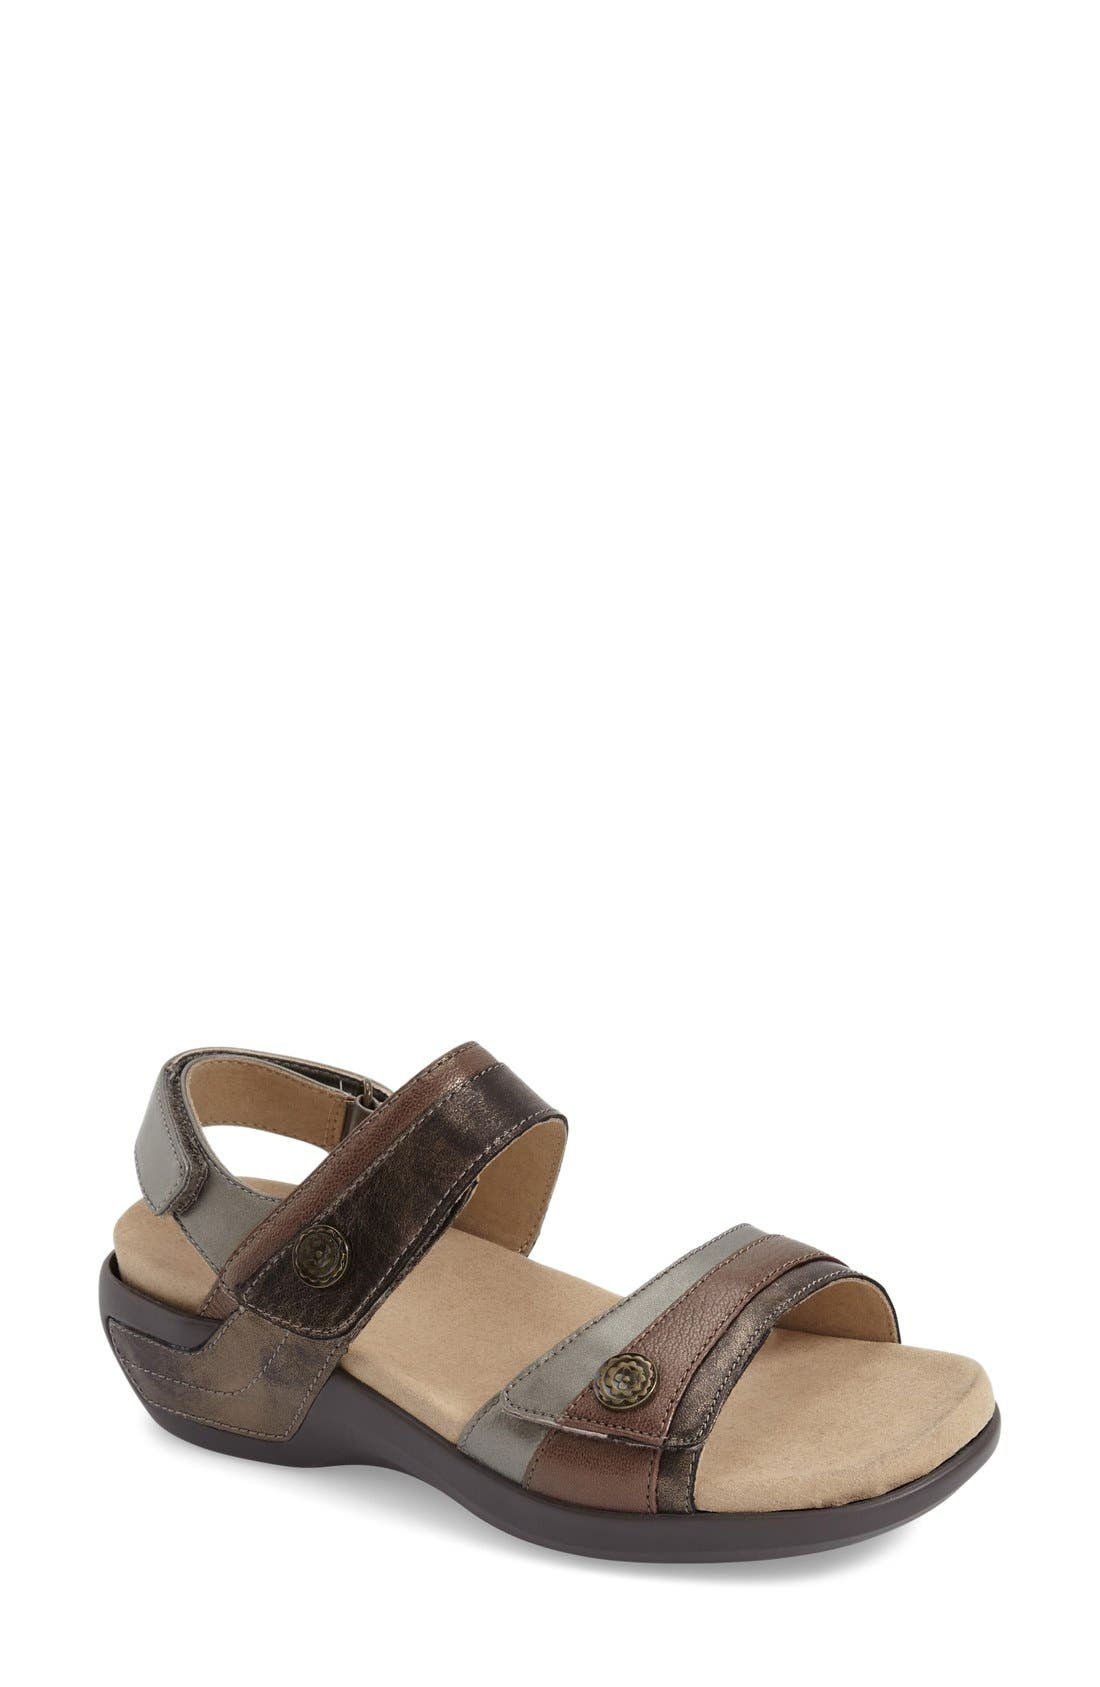 'Katherine' Sandal,                         Main,                         color, Grey Leather